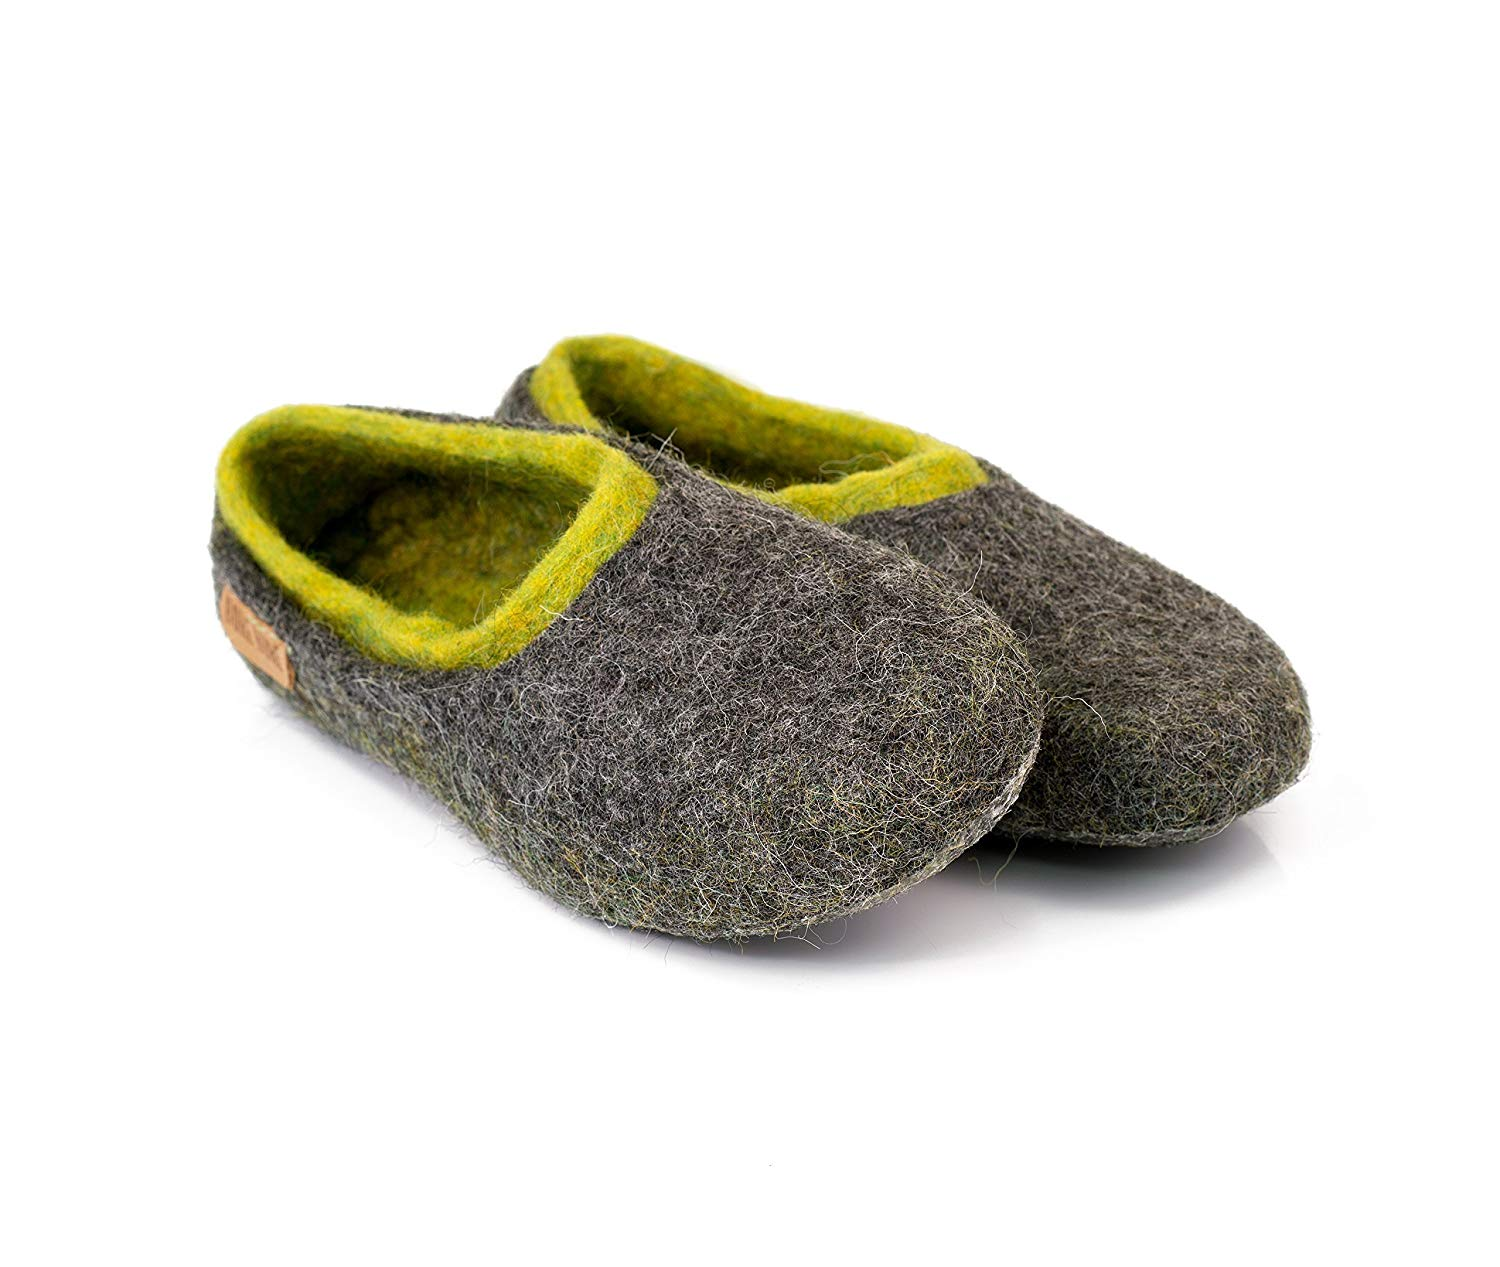 fb12d644504c Get Quotations · Gray felted wool slippers with neon green inner layer,  Handmade home shoes for men